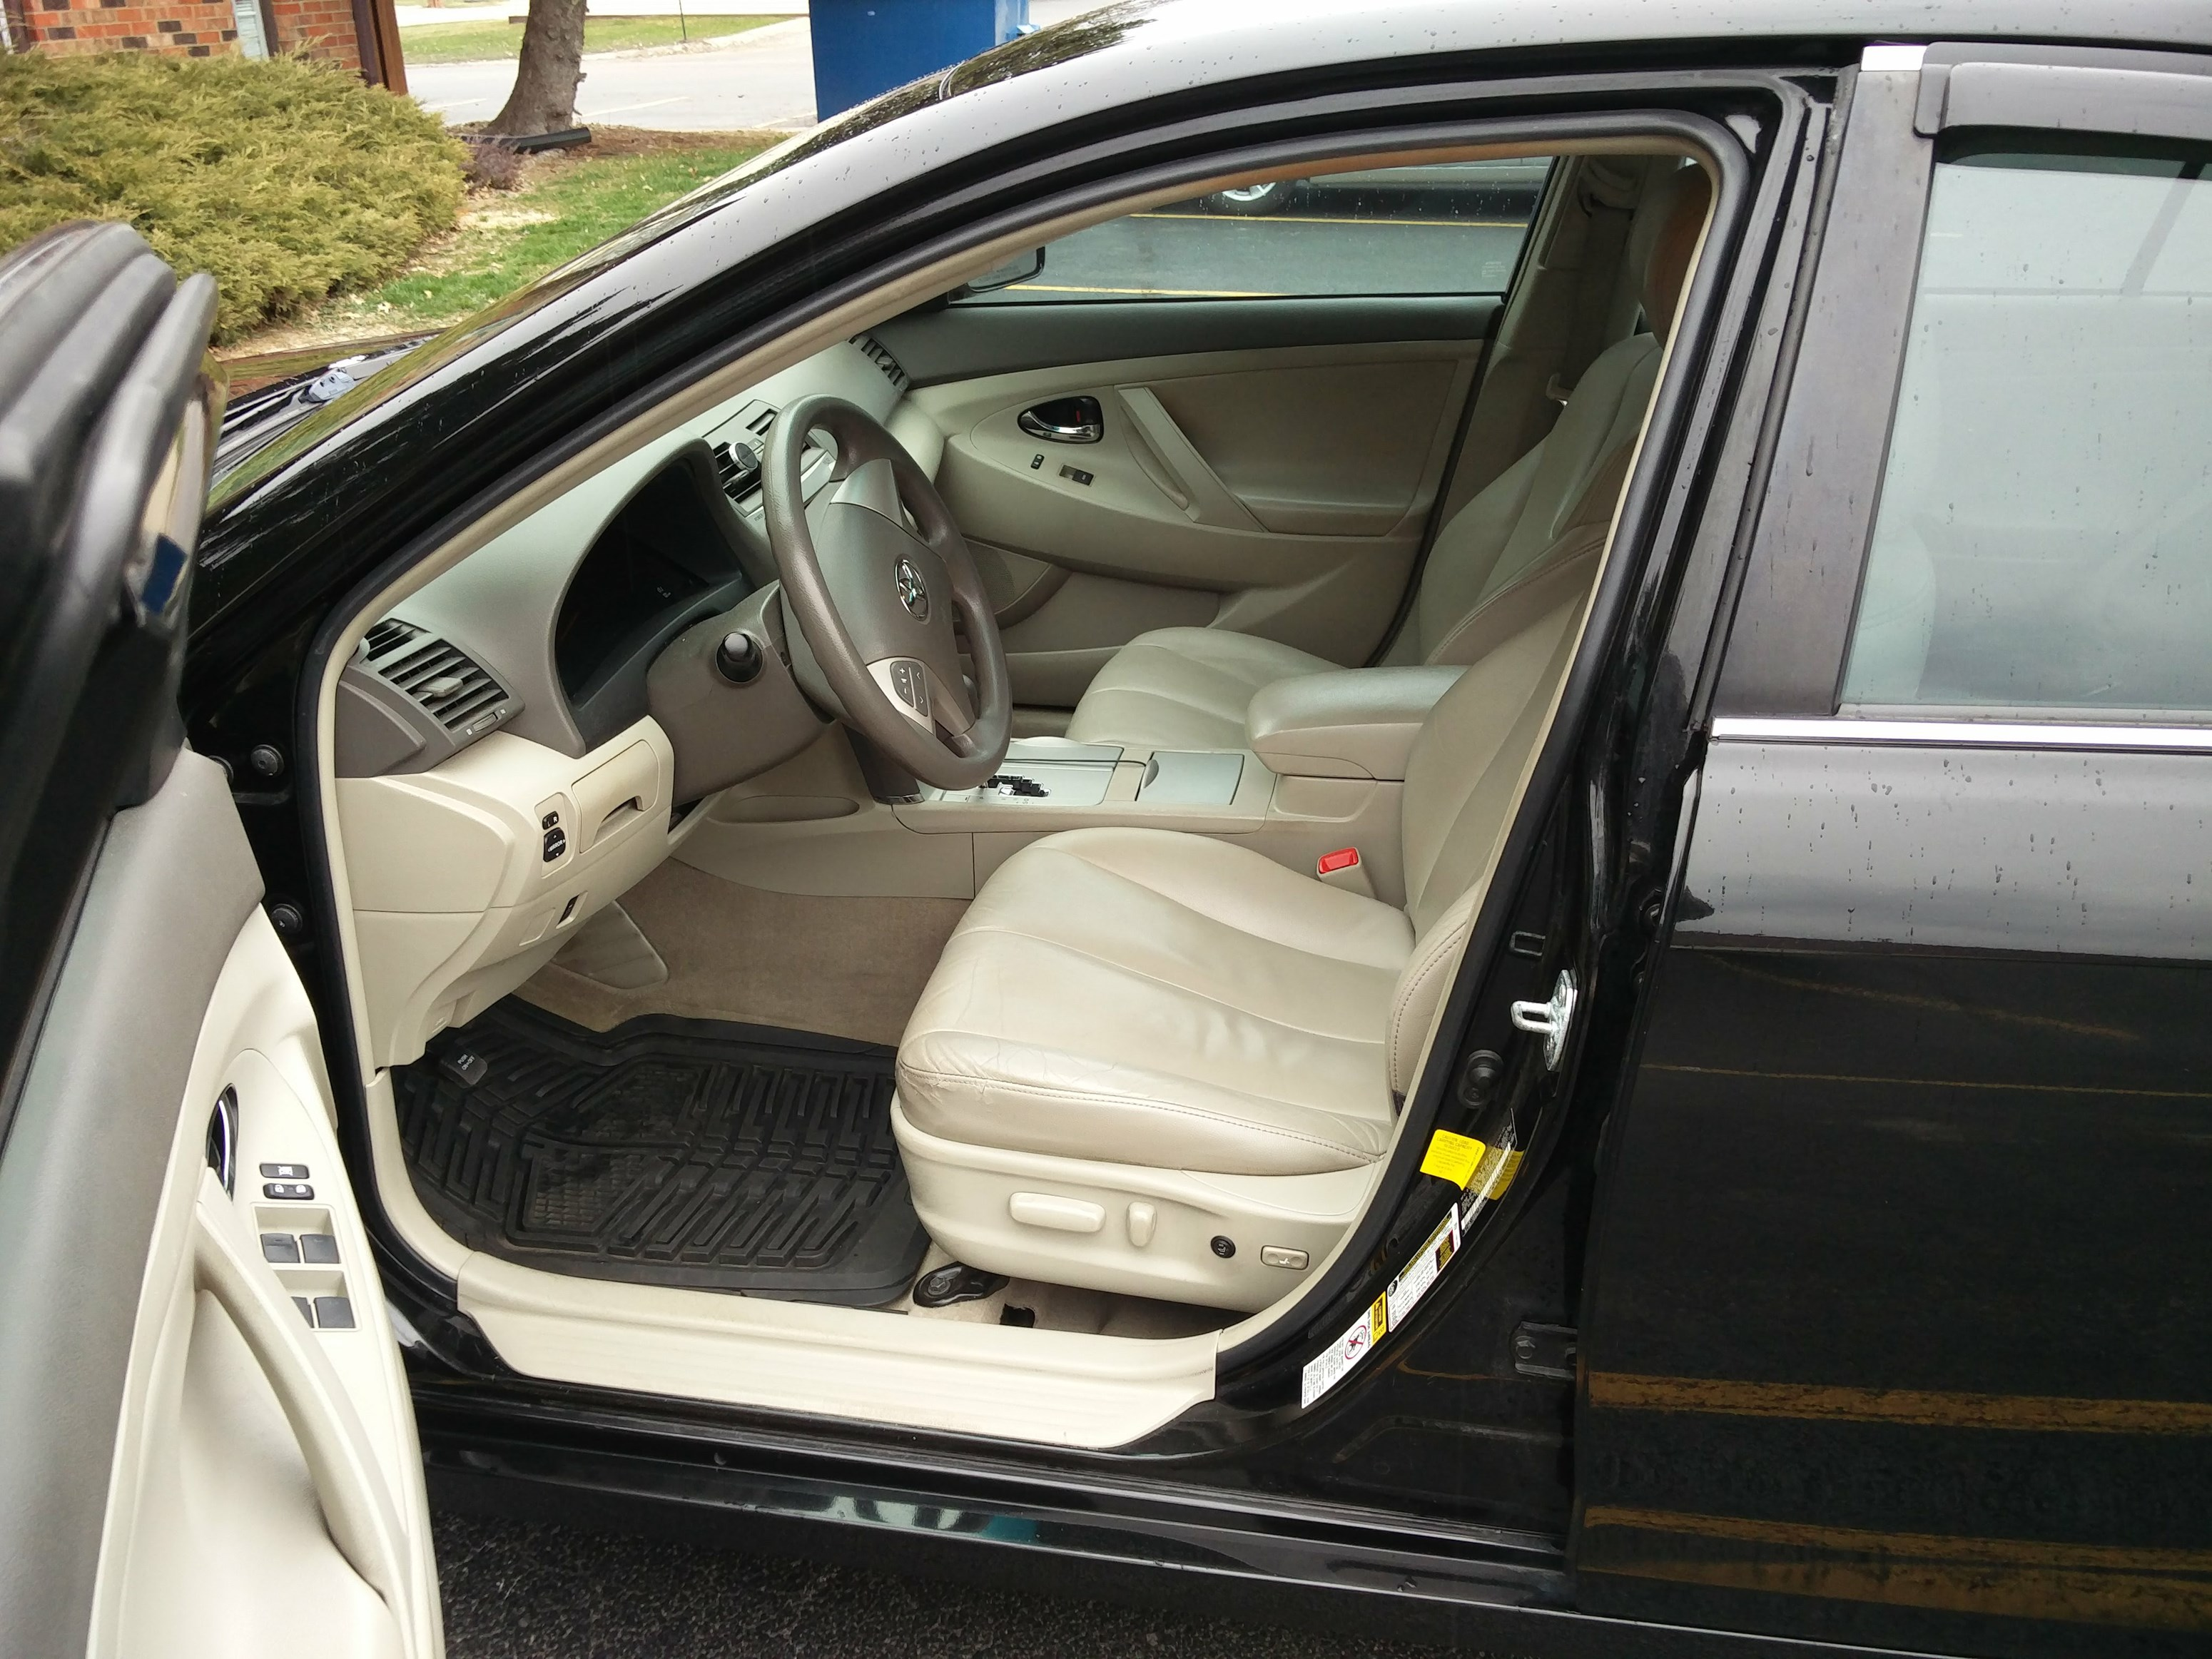 2011 Toyota Camry Le 72500 Miles Used Cars In